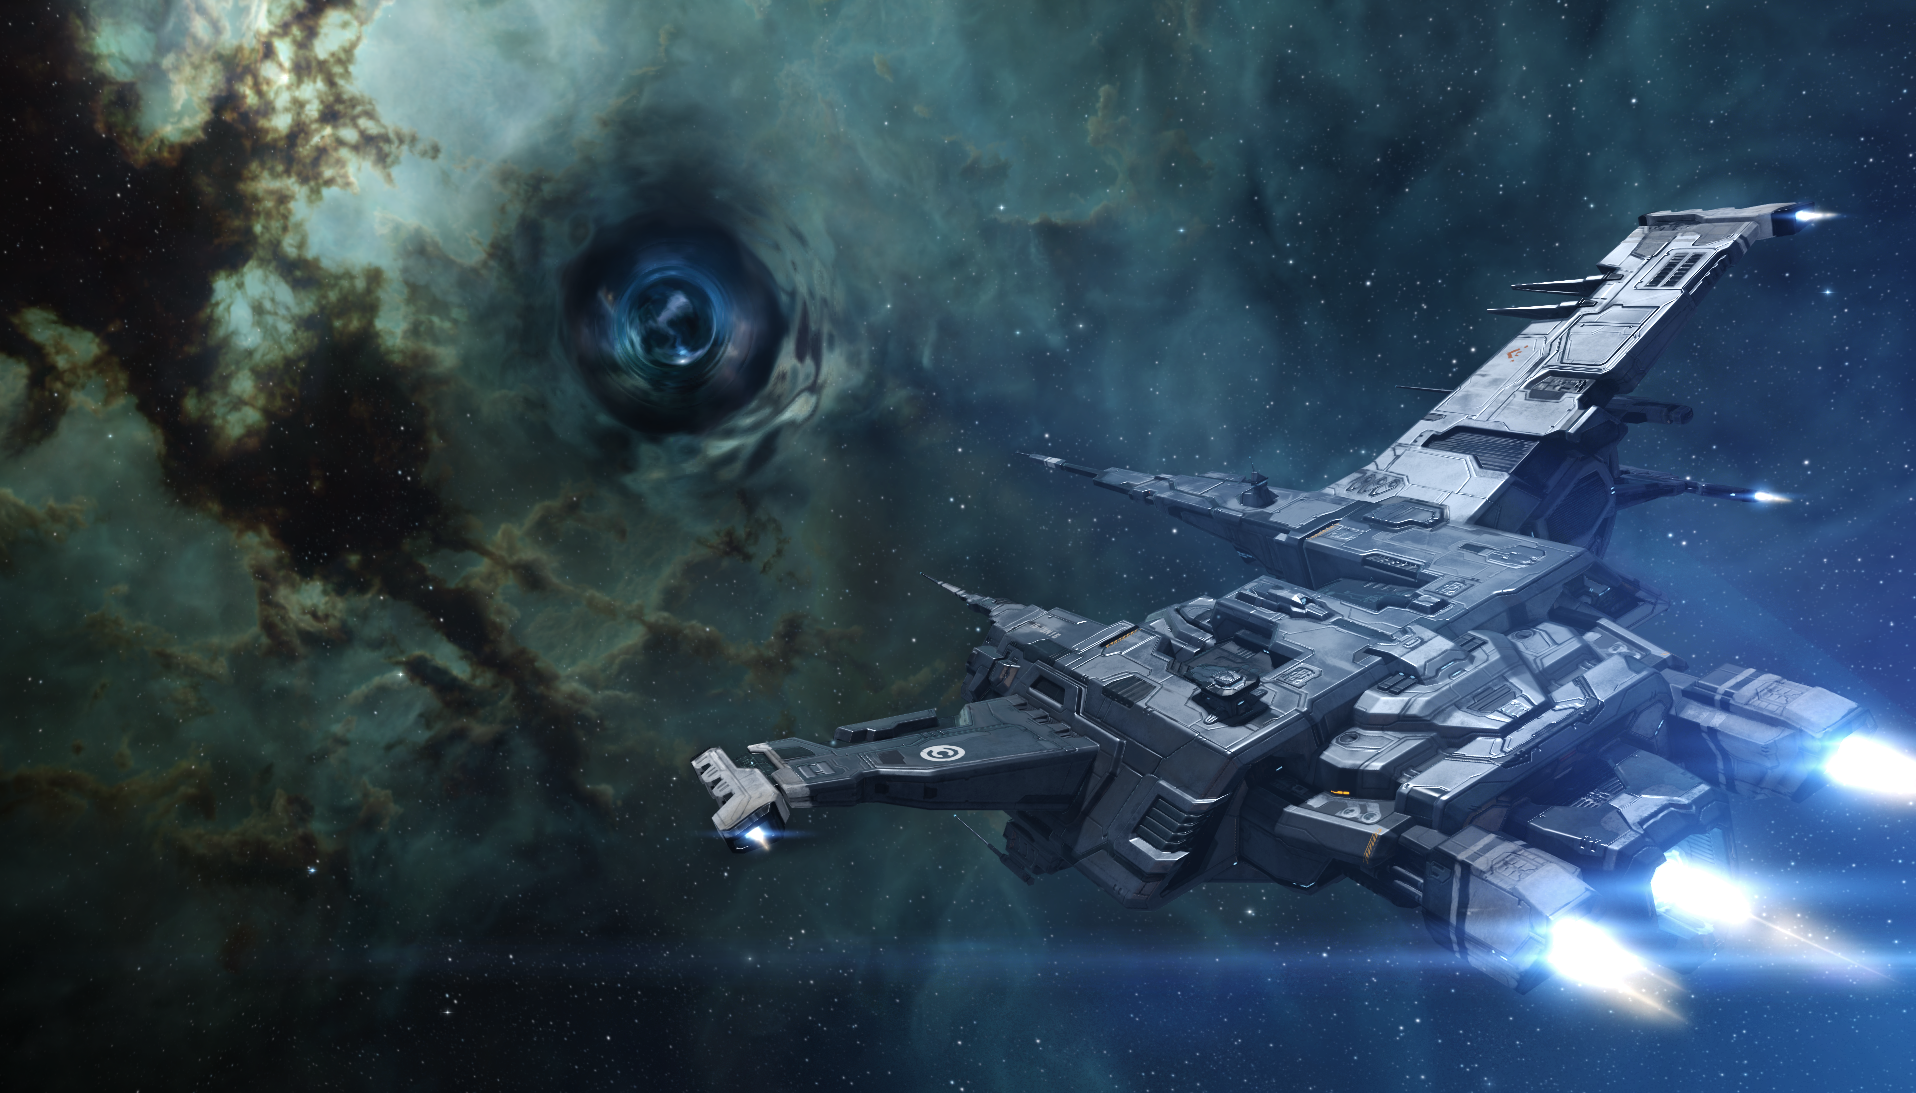 Coming in Hyperion on August 26th | EVE Online